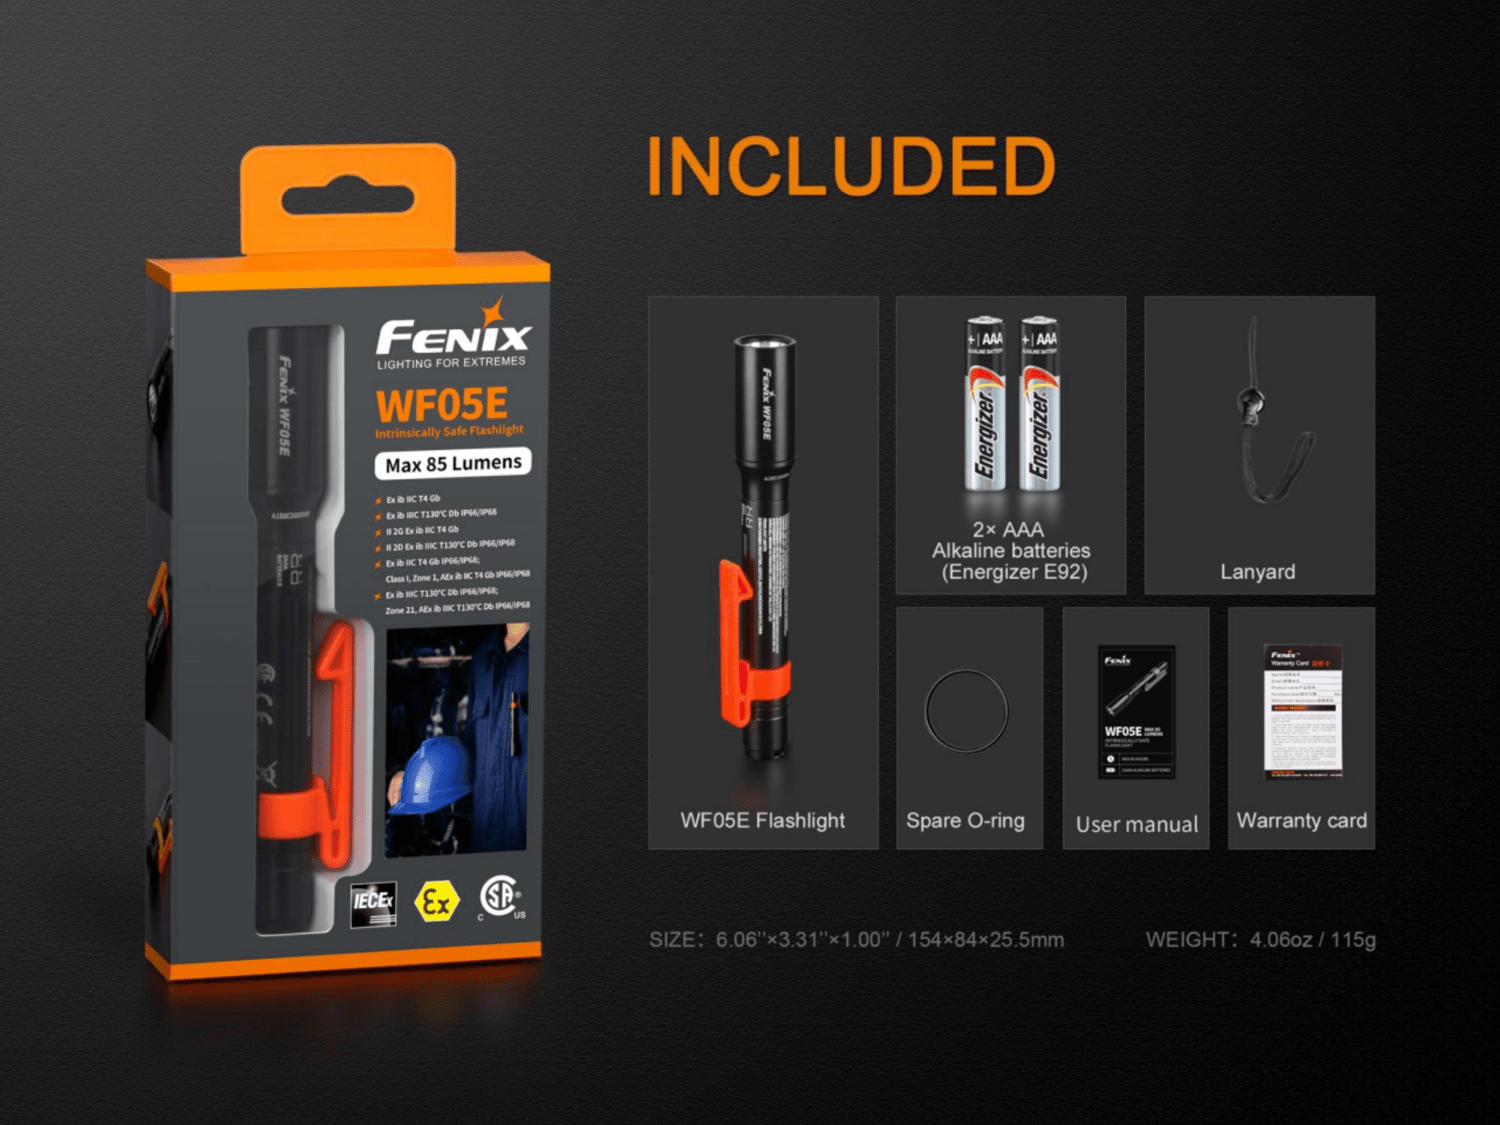 Fenix WF05E LED Flashlight, Intrinsically Safe Explosion Flameproof Torch in India, Pen Size Industrial Safe Torch, AA Battery Flashlight for Industrial Use